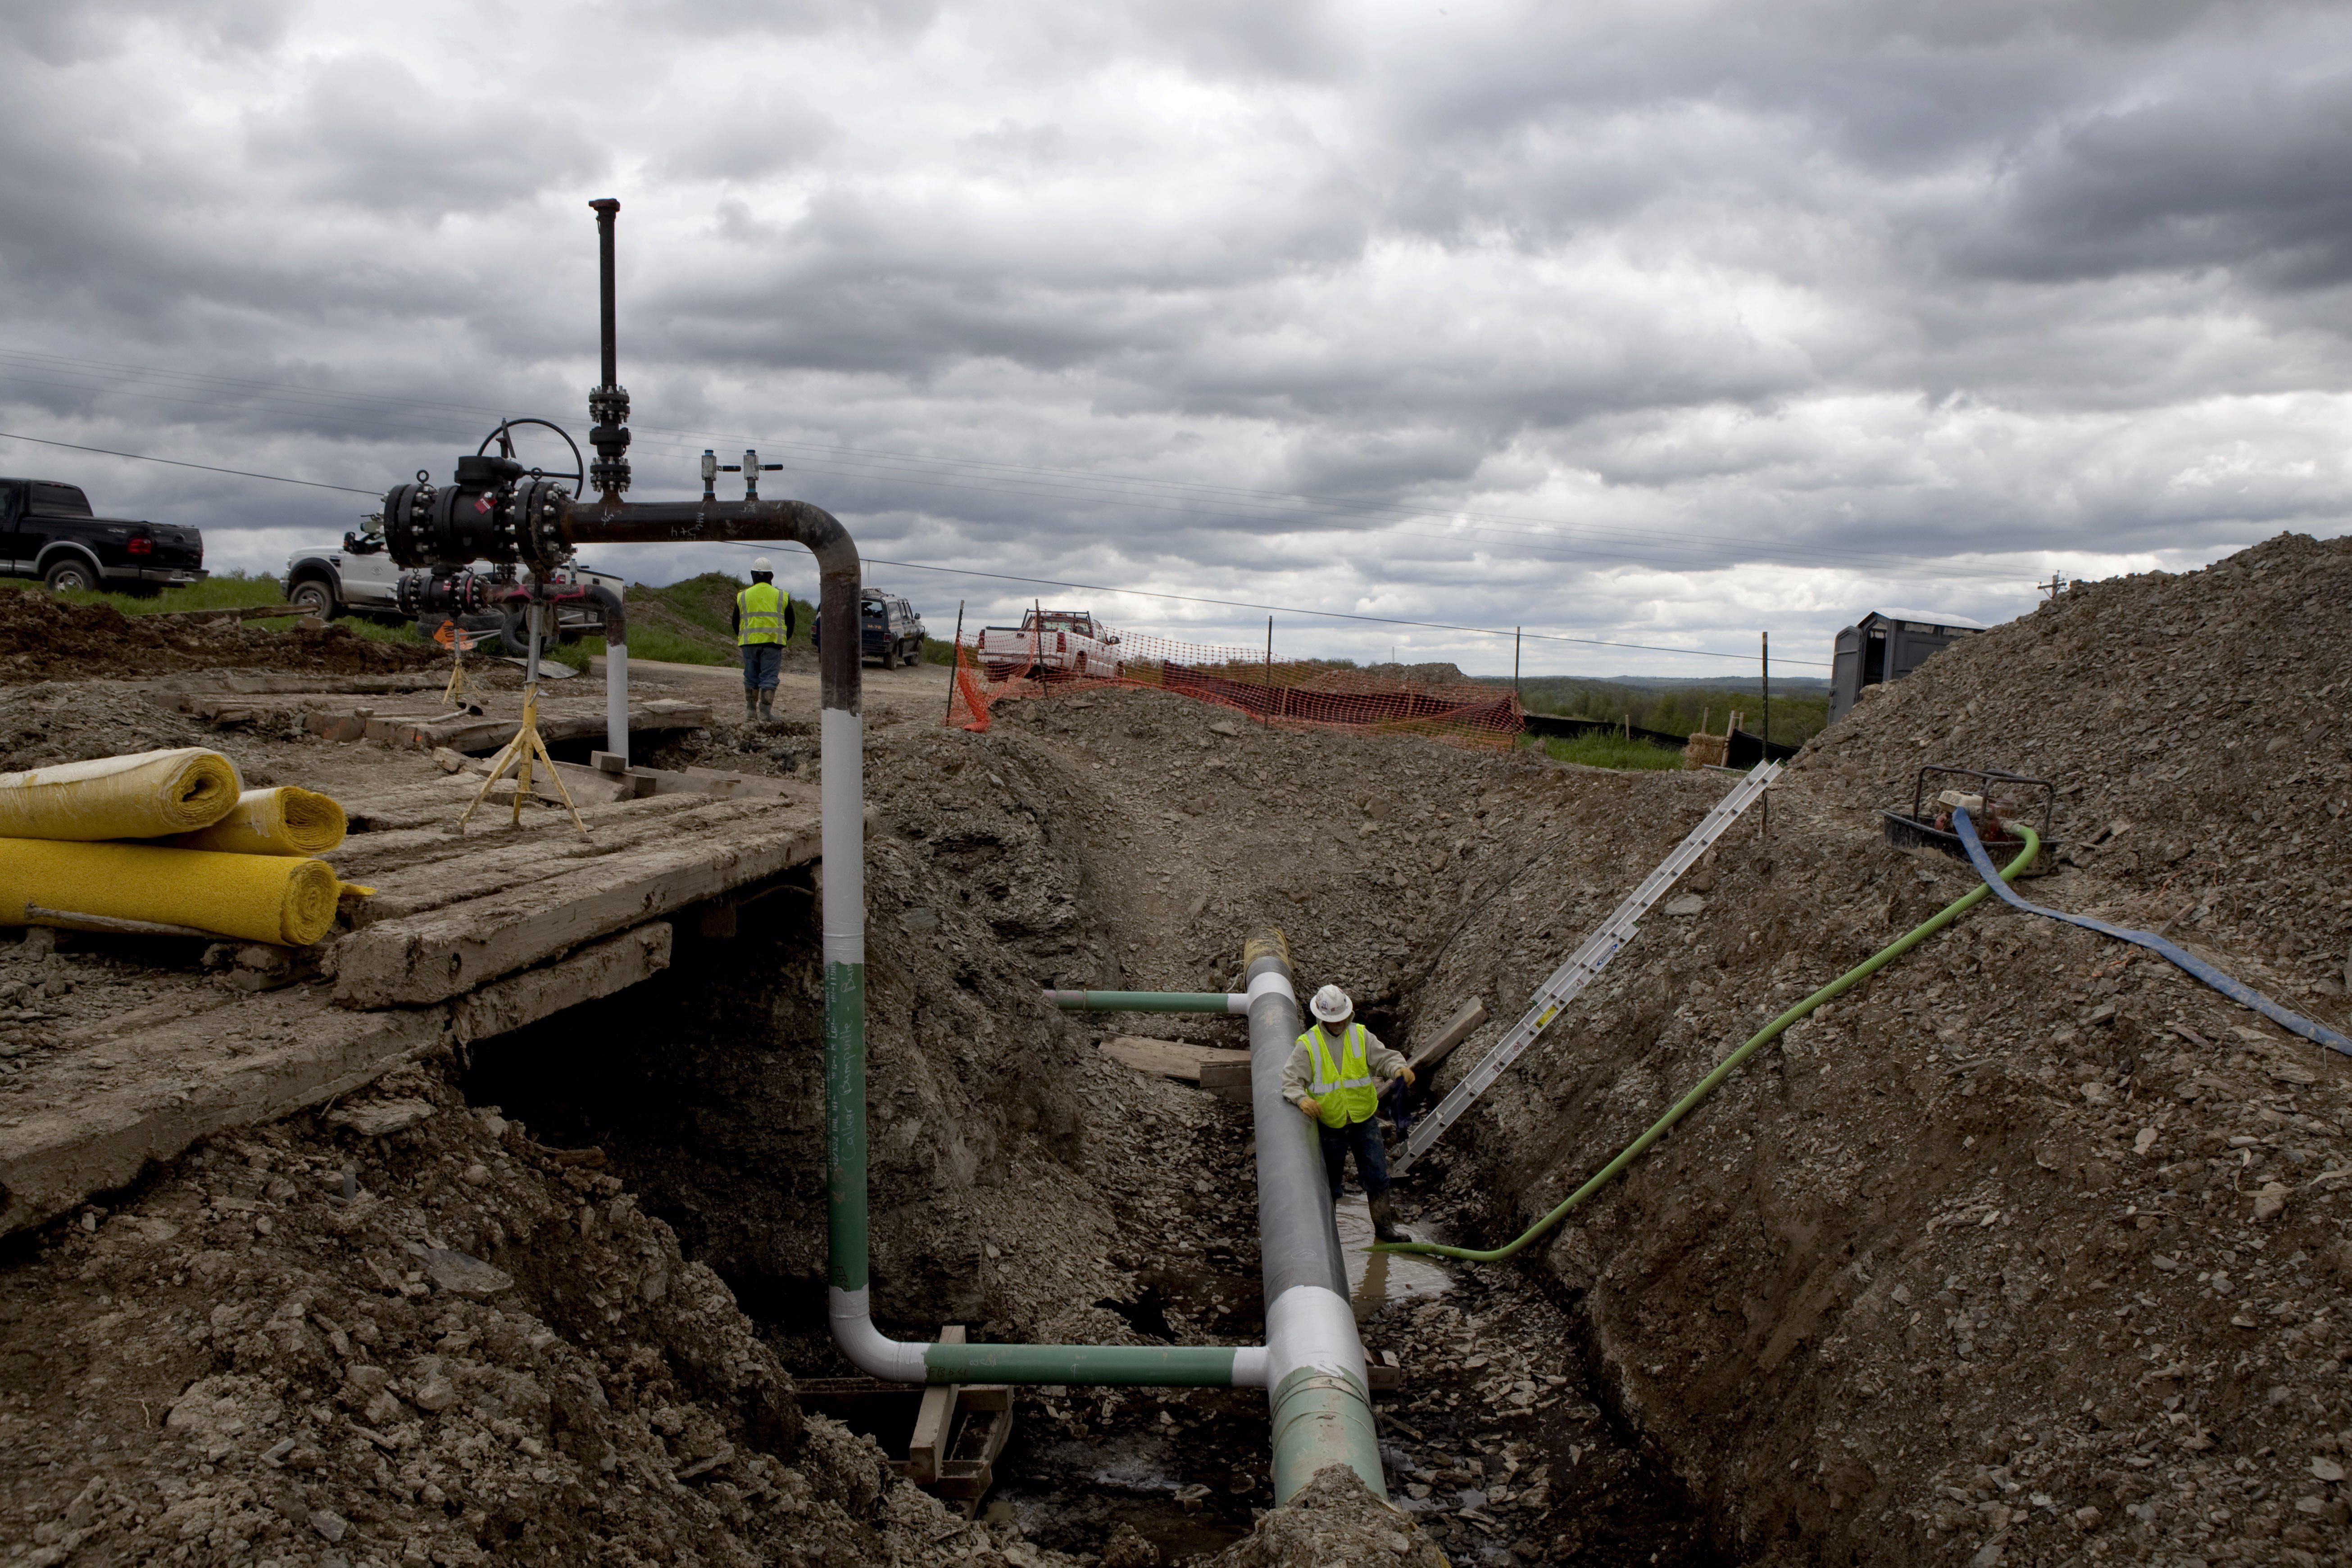 Judge Rules That U.S. Agency Lacks Authority to Regulate Fracking